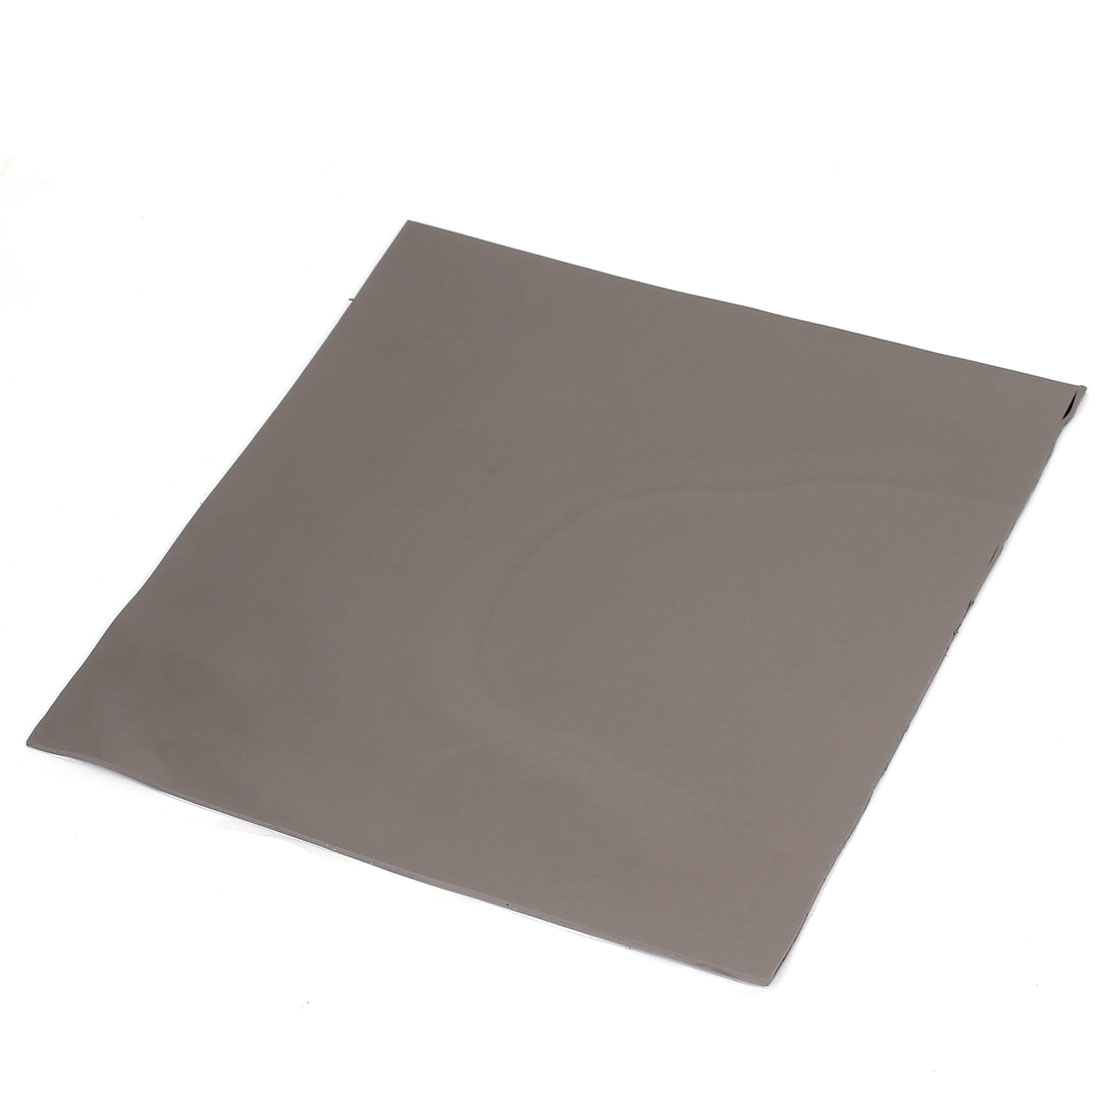 202mm x 202mm x 2mm Enviromentaly Friendly Silicone Thermal Pad for CPU GPU Heatsink